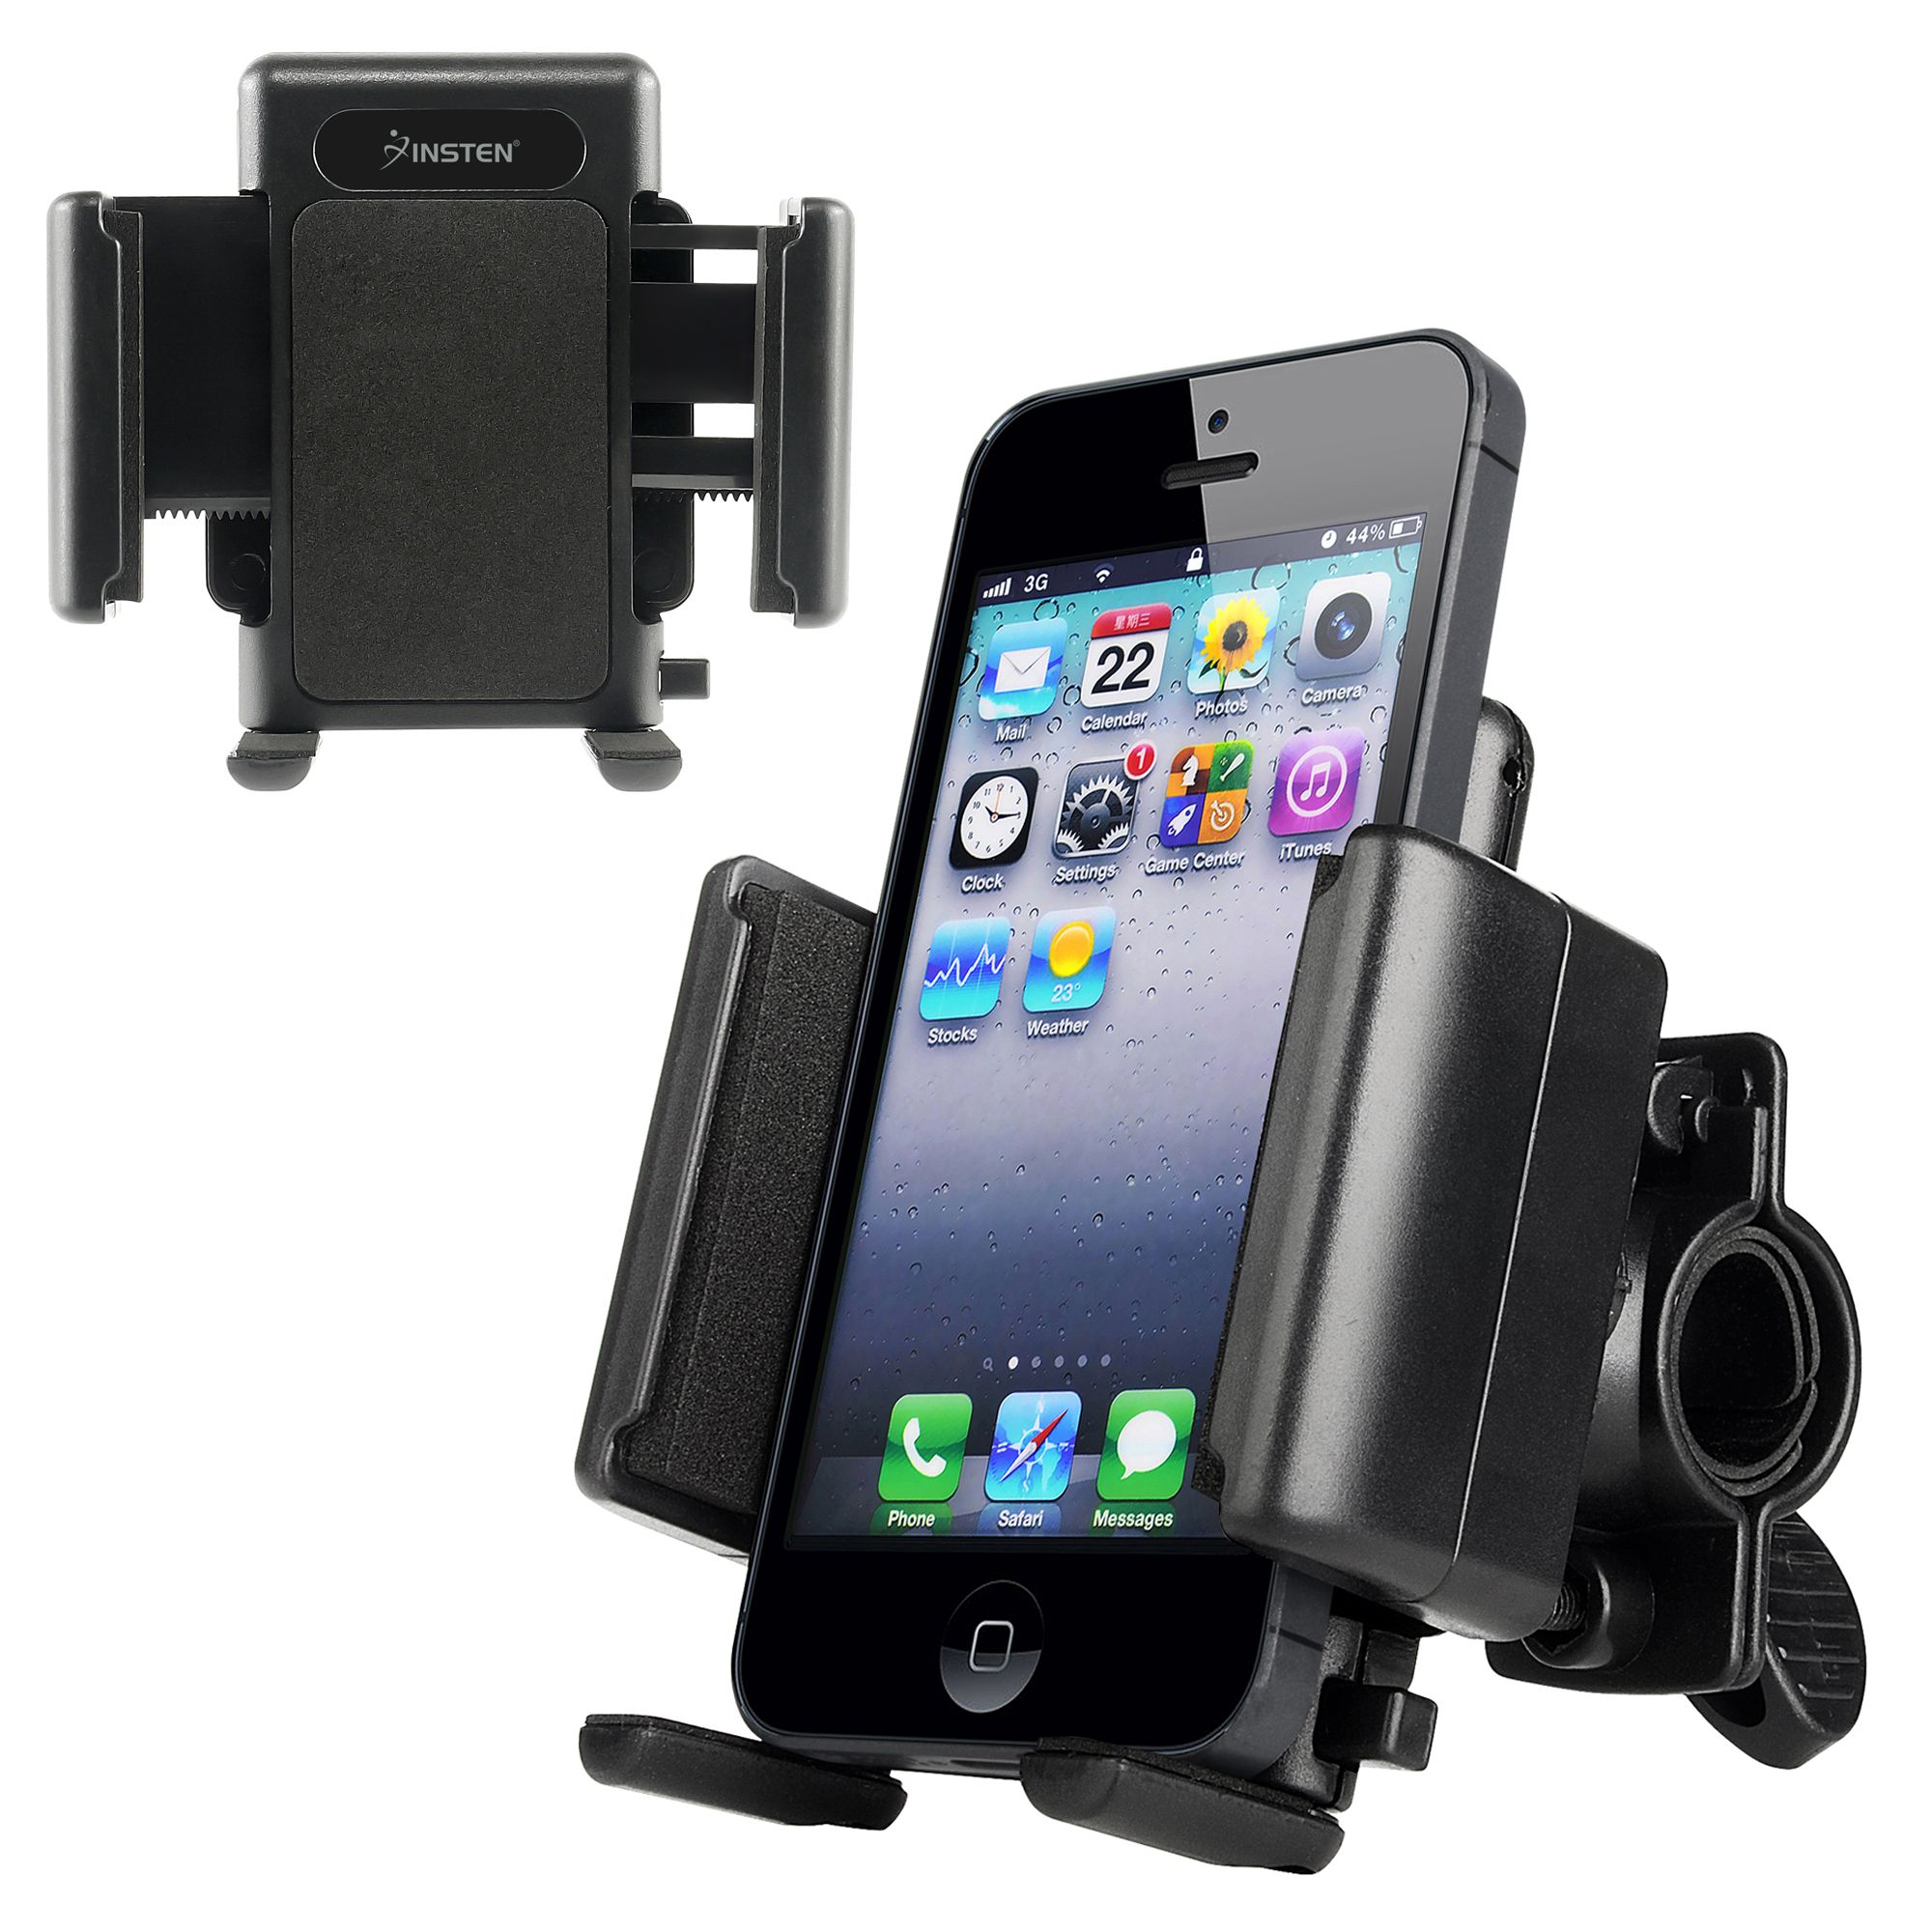 Insten Bike Bicycle Phone Holder Handlebar Bracket Mount for Smartphone iPhone XS X 8 7 6 Plus 6S SE/ Samsung Galaxy S9 S8 Note 8/ Moto E4 G5 G4 Z Play Droid E G X/ LG K20 Stylo 3 Adjustable Universal